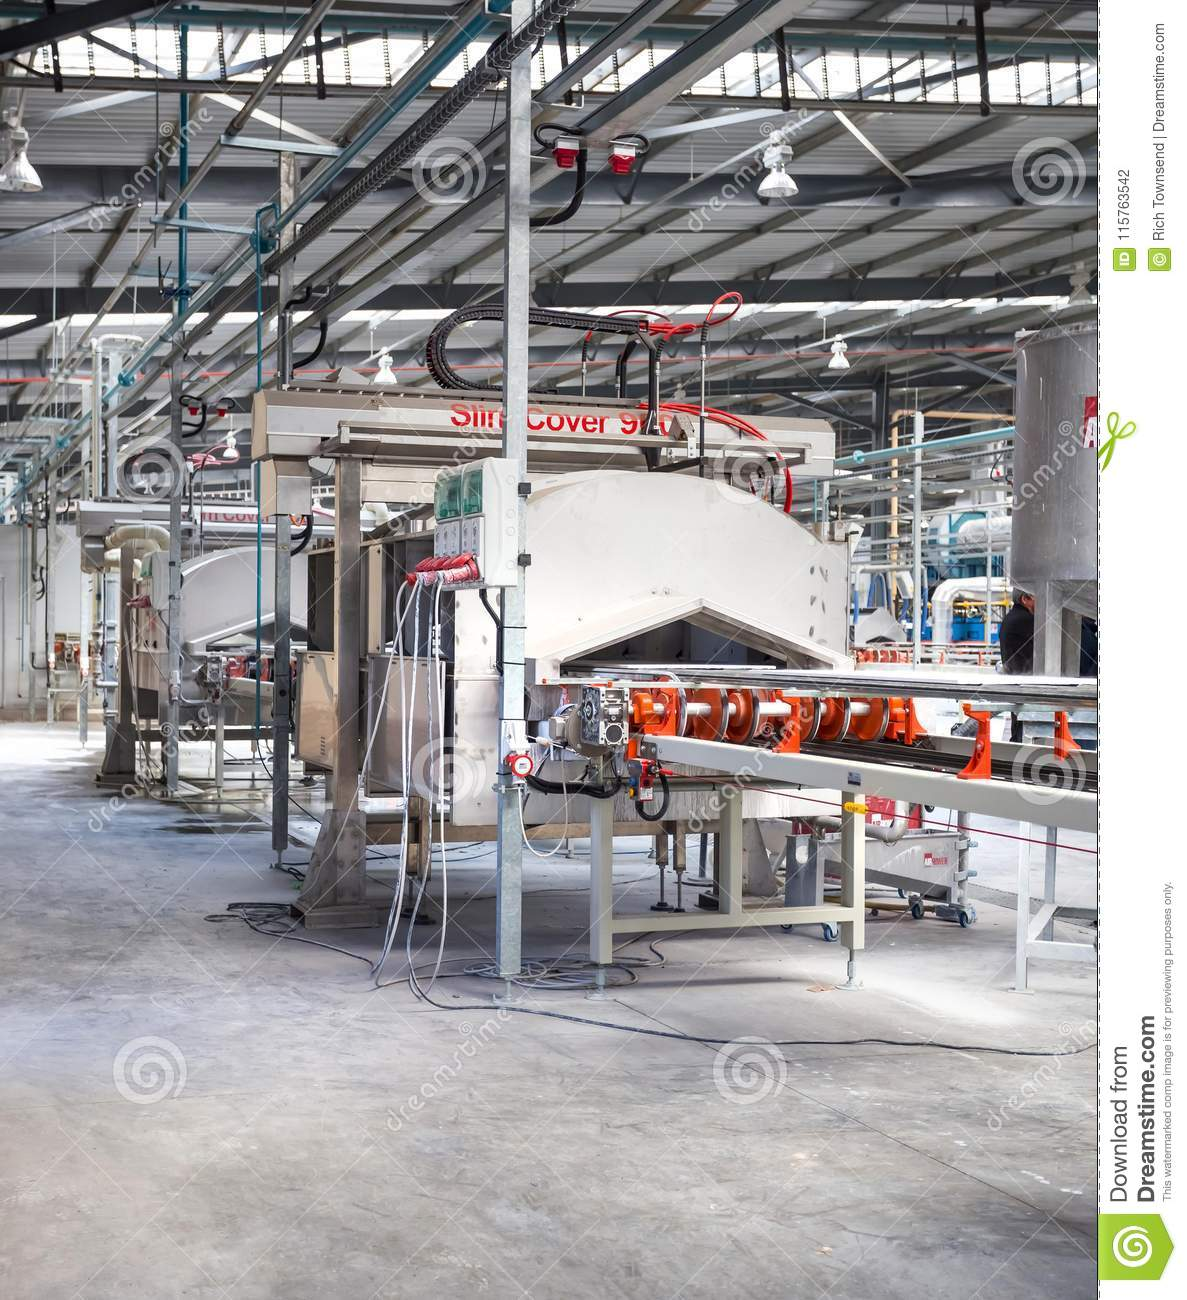 Ceramic tile manufacturing plant with a conveyer belt.